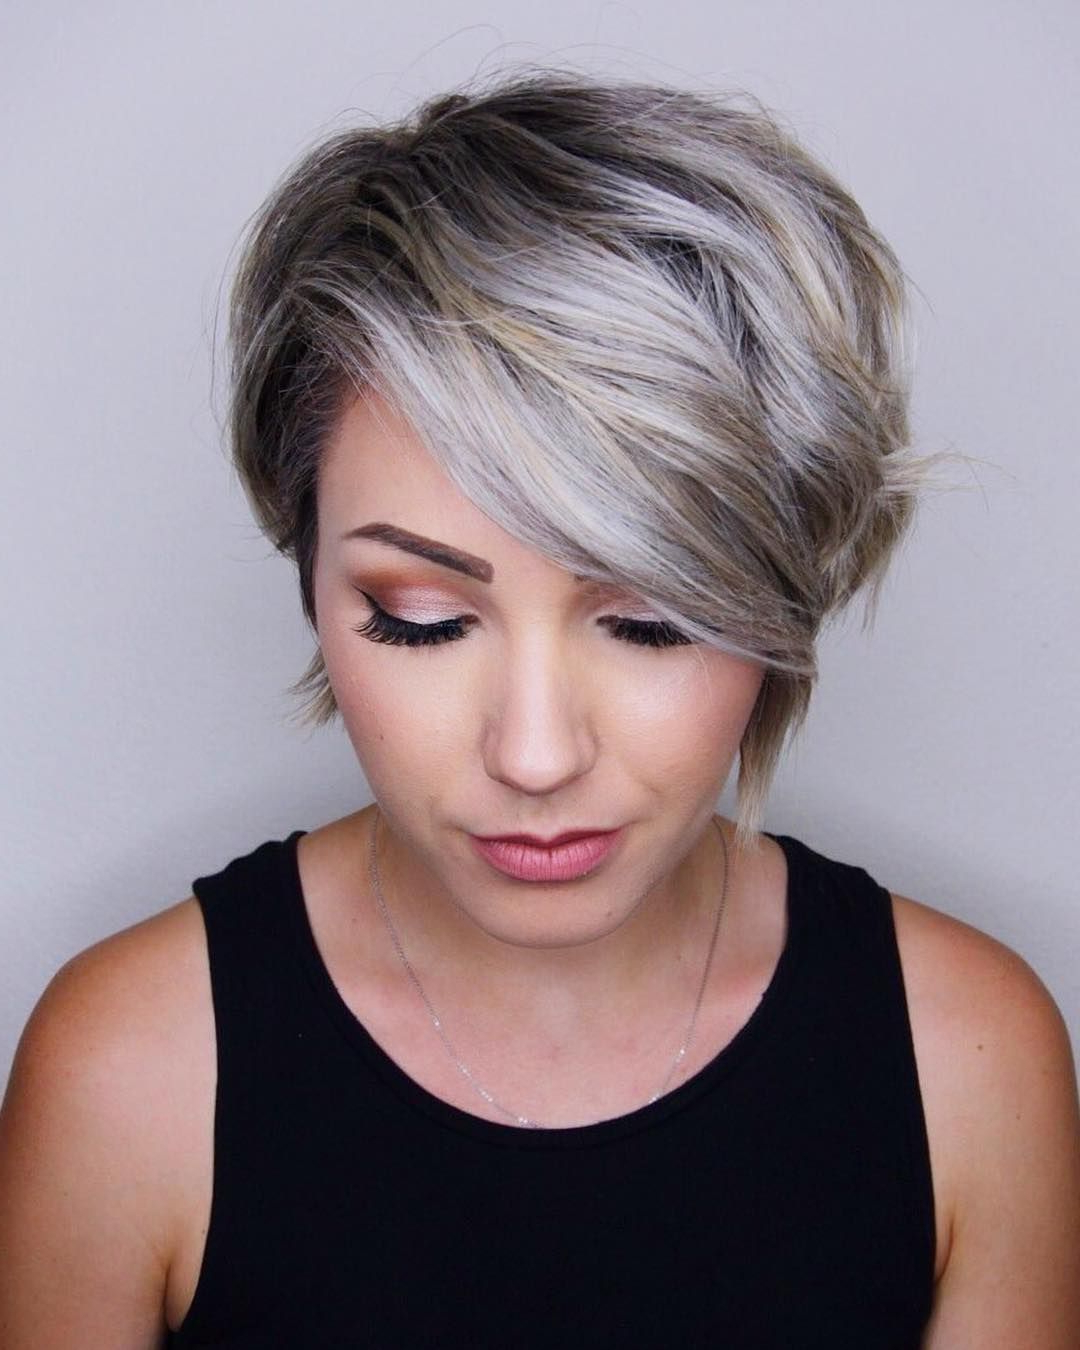 Icy Blonde Hair, Short Hair, Pixie Hair, @chloenbrown | H A I R In Pertaining To Icy Poker Straight Razored Pixie Haircuts (View 2 of 20)